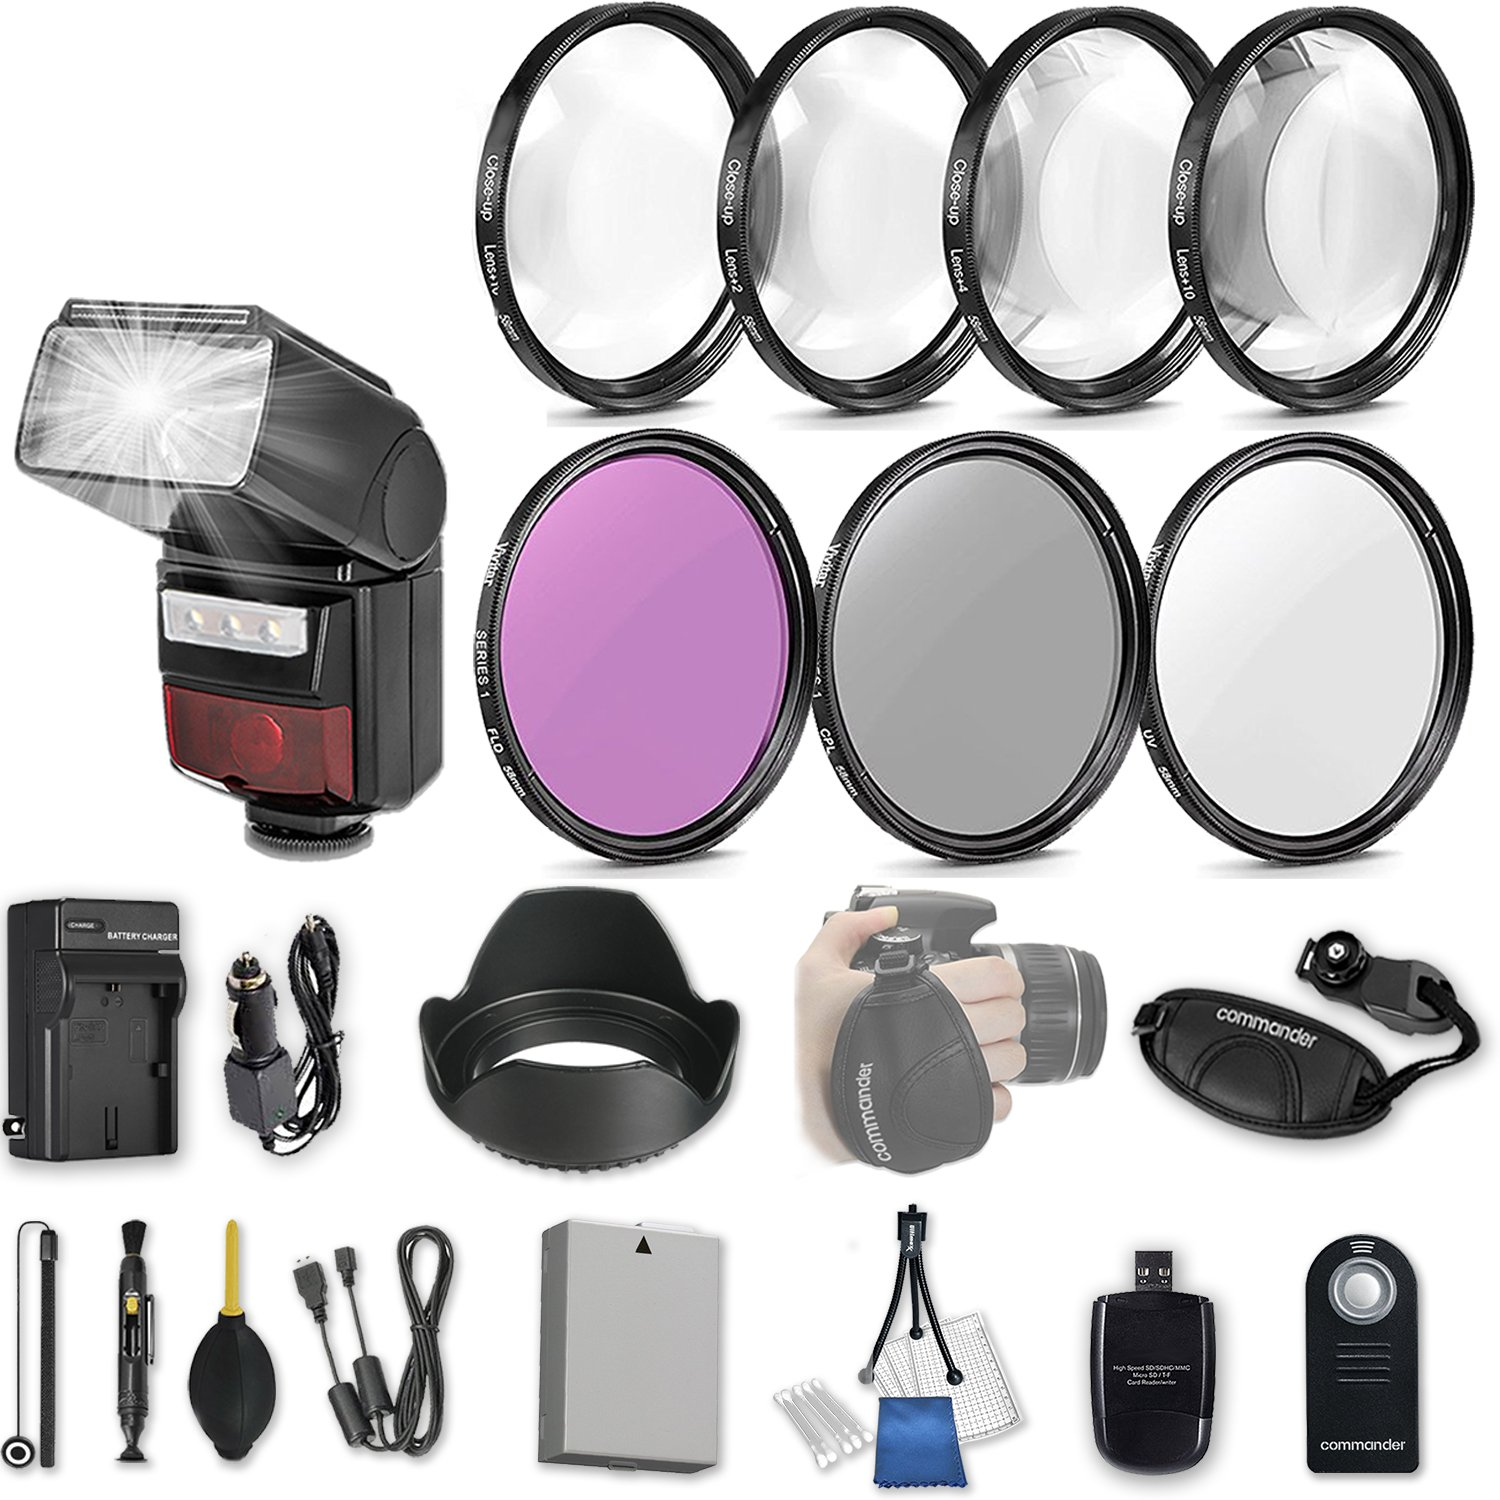 58mm 21 Pc Accessory Kit for Canon EOS Rebel T3i, T5i, 300D, 700D DSLRs with LED-Flash, UV CPL FLD Filters, & 4 Piece Macro Close-Up Set, Battery, and More by 33rd Street